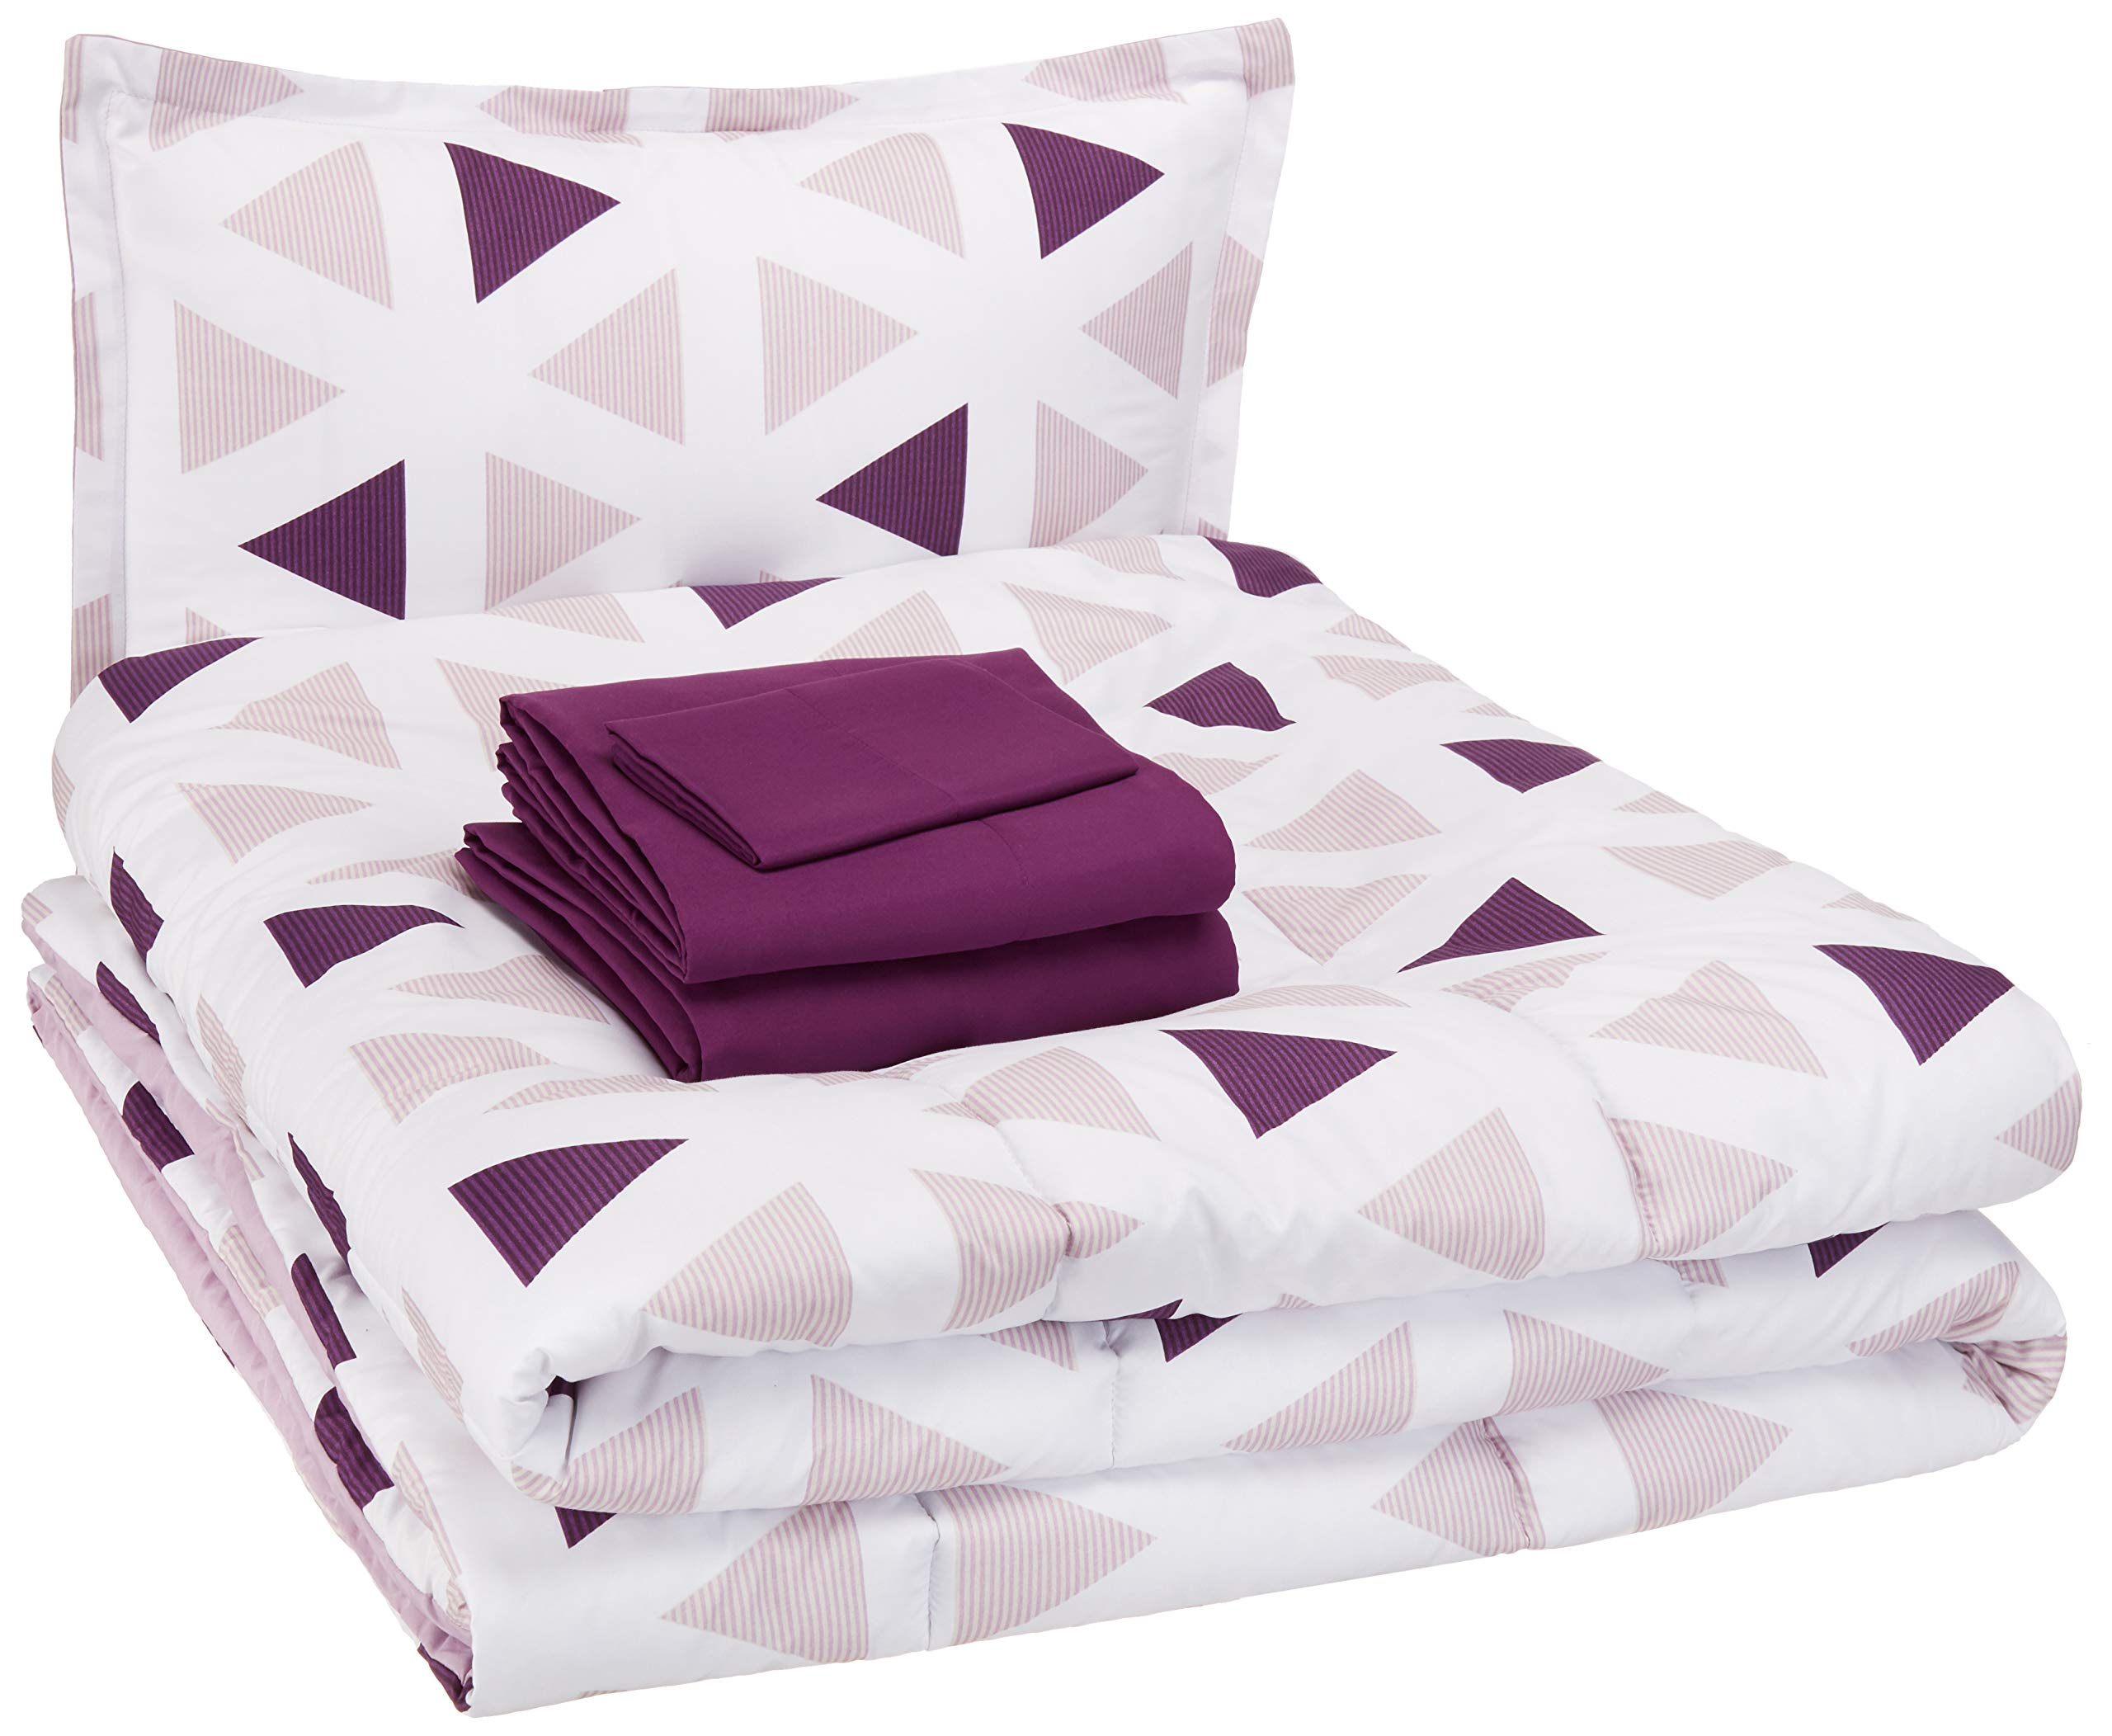 CDM product AmazonBasics Easy-Wash Microfiber Kid's Bed-in-a-Bag Bedding Set - Twin, Purple Triangles big image